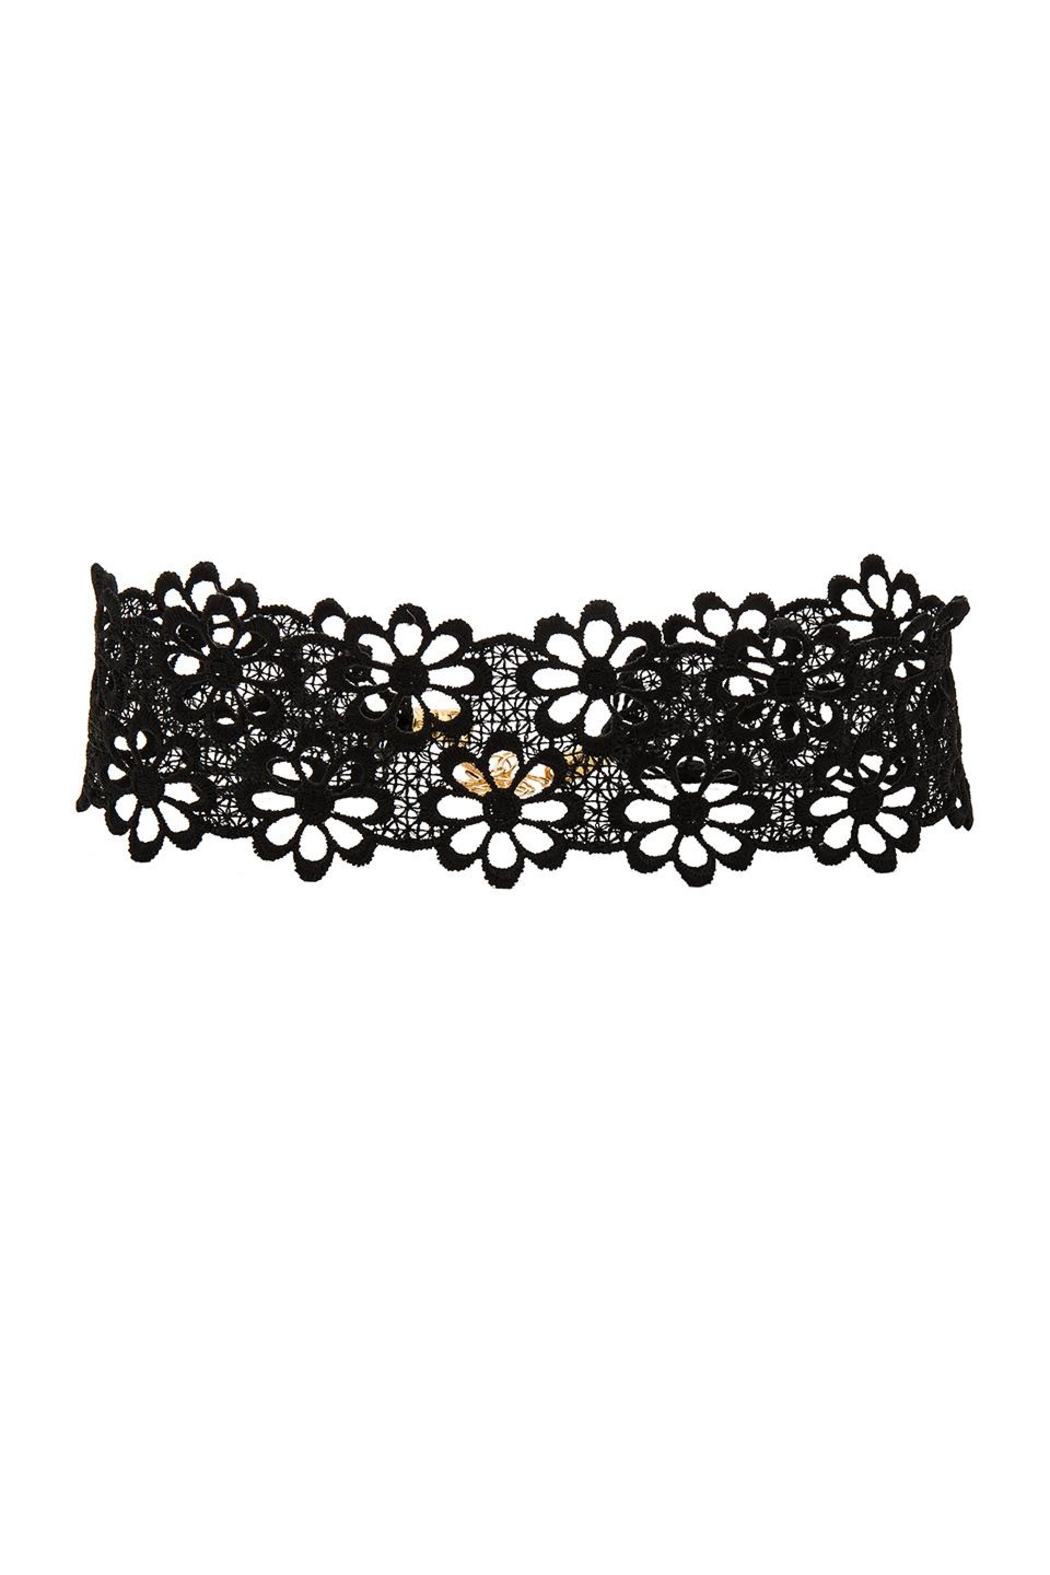 Frasier Sterling Lacey Daisy Choker in Black kbIFXu8tV6